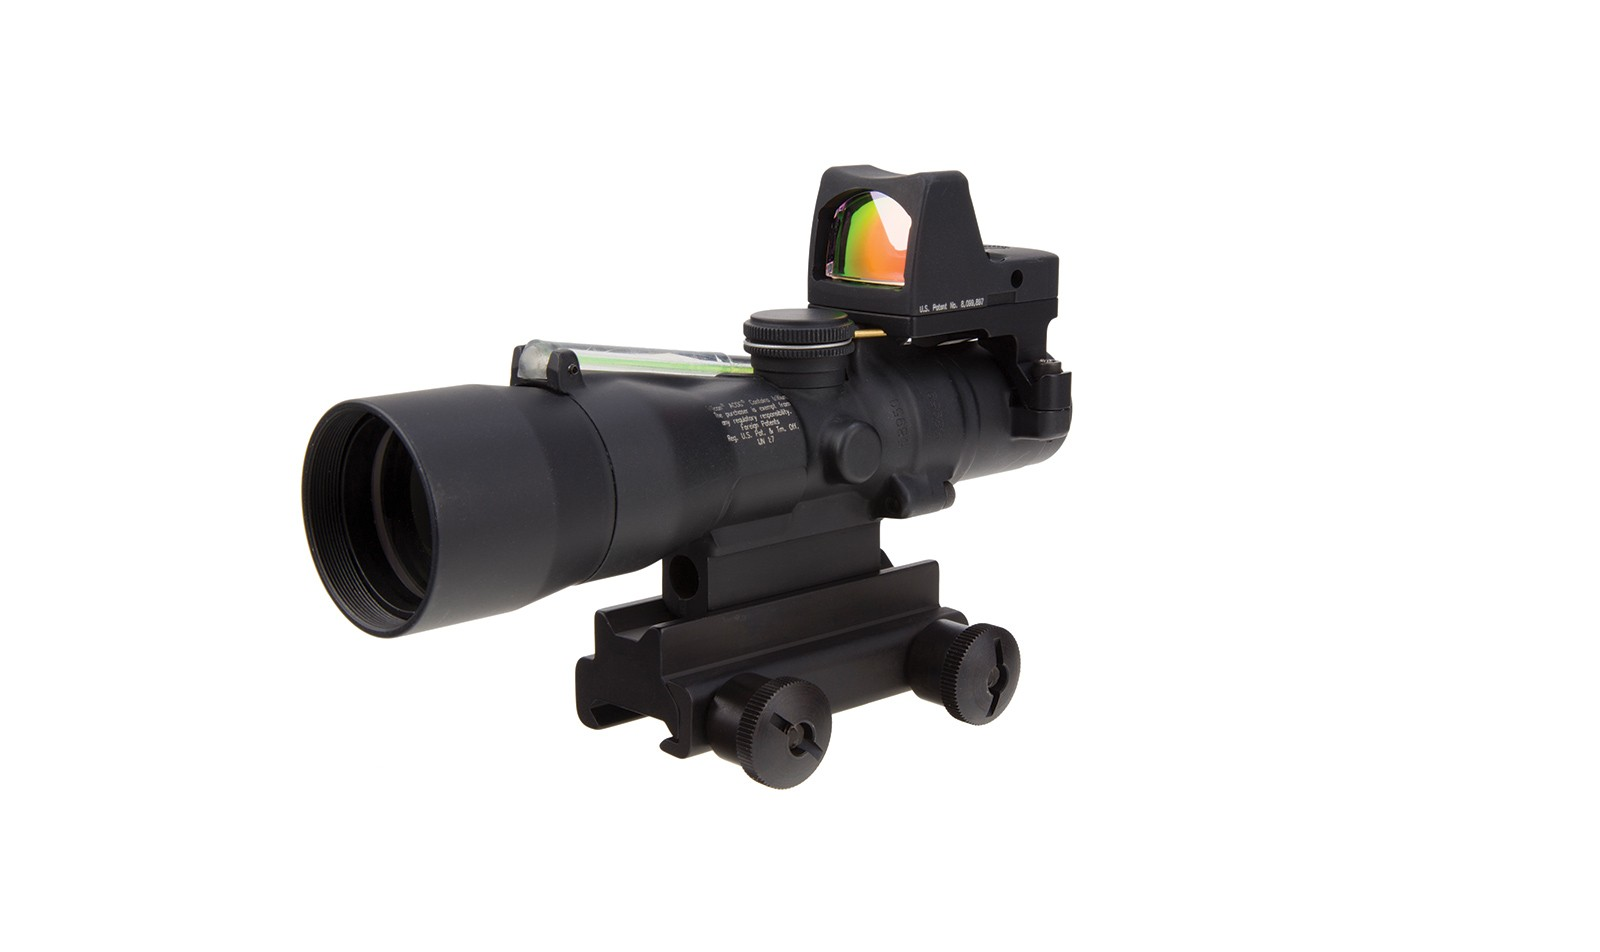 Trijicon ACOG® 3x30 BAC Riflescope  and Trijicon RMR® - 5.56x45mm / 62gr